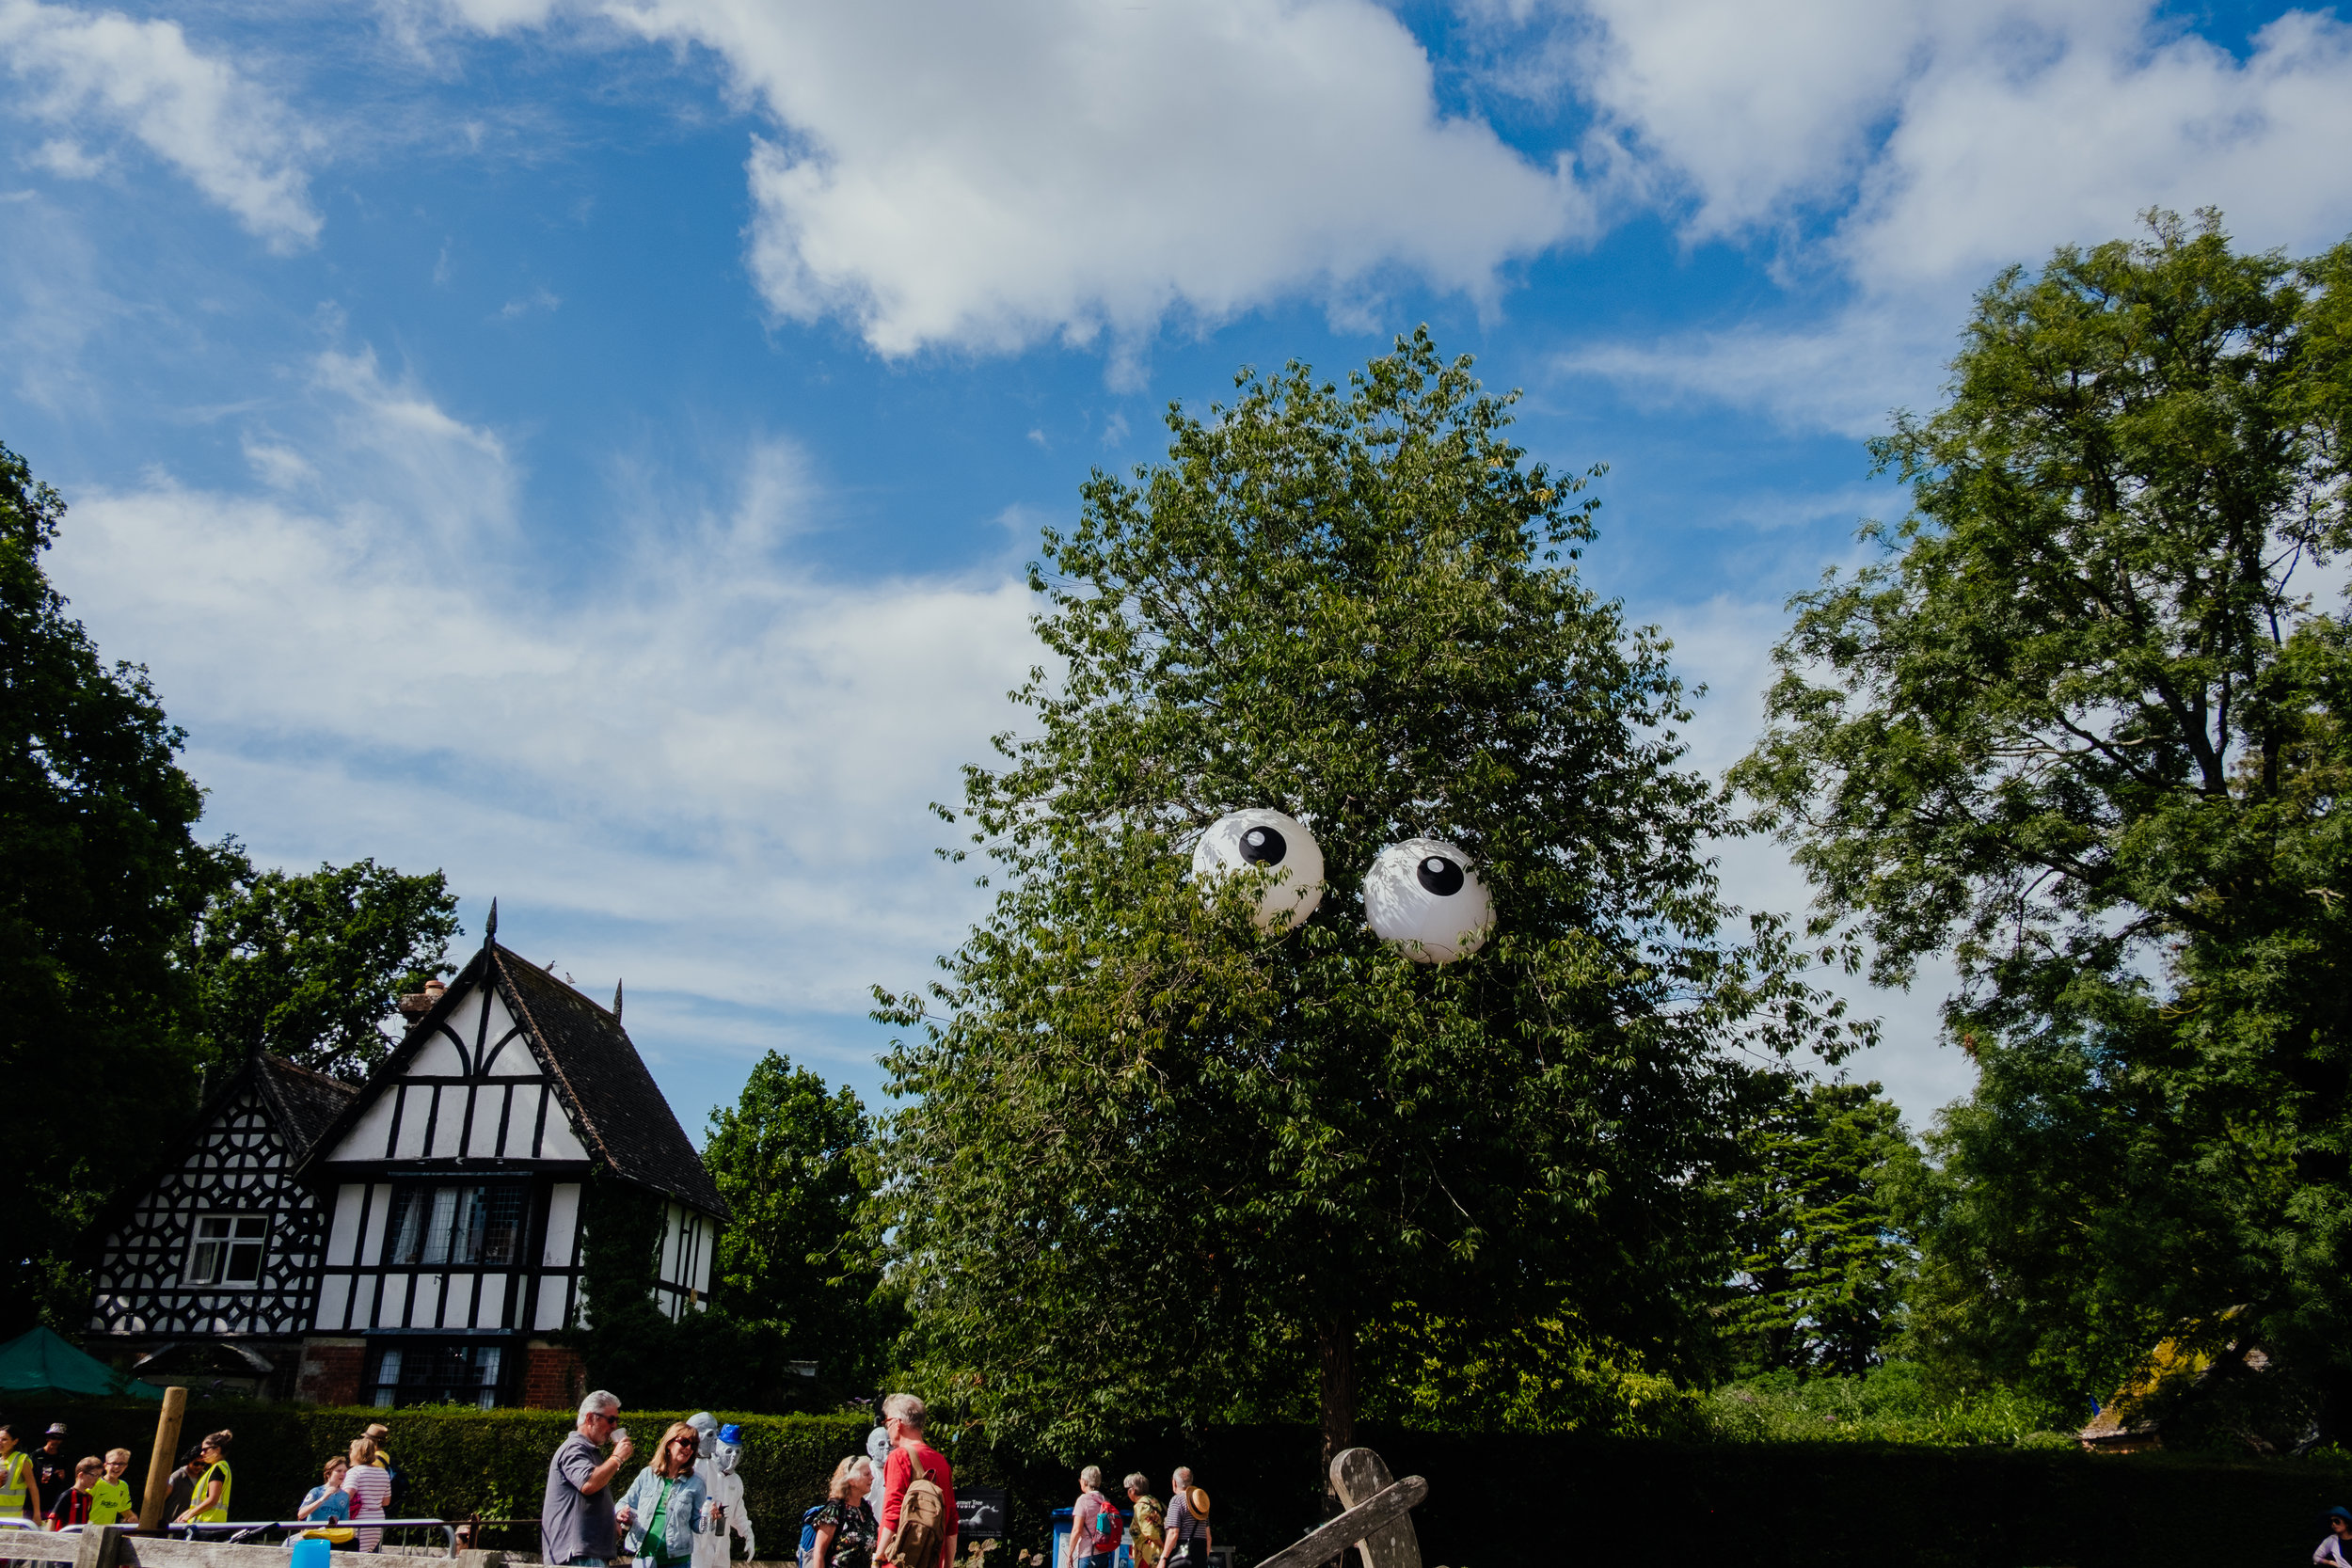 Larmer Tree Festival 2019 tree with eyes